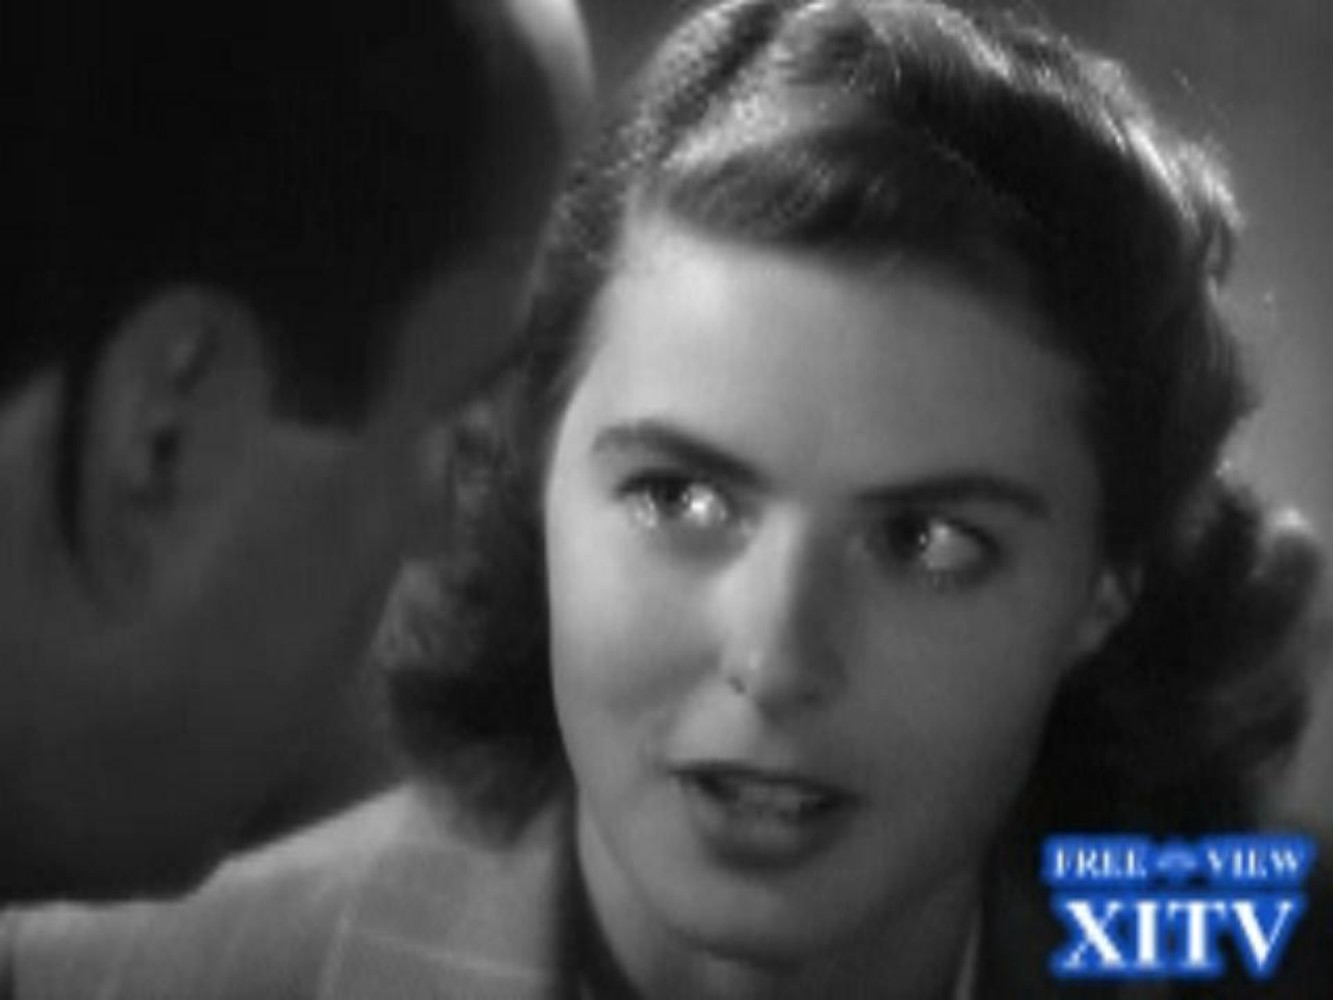 Watch Now! XITV FREE <> VIEW™ Casablanca! Starring Ingrid Bergman and Humphrey Bogart! XITV Is Must See TV!